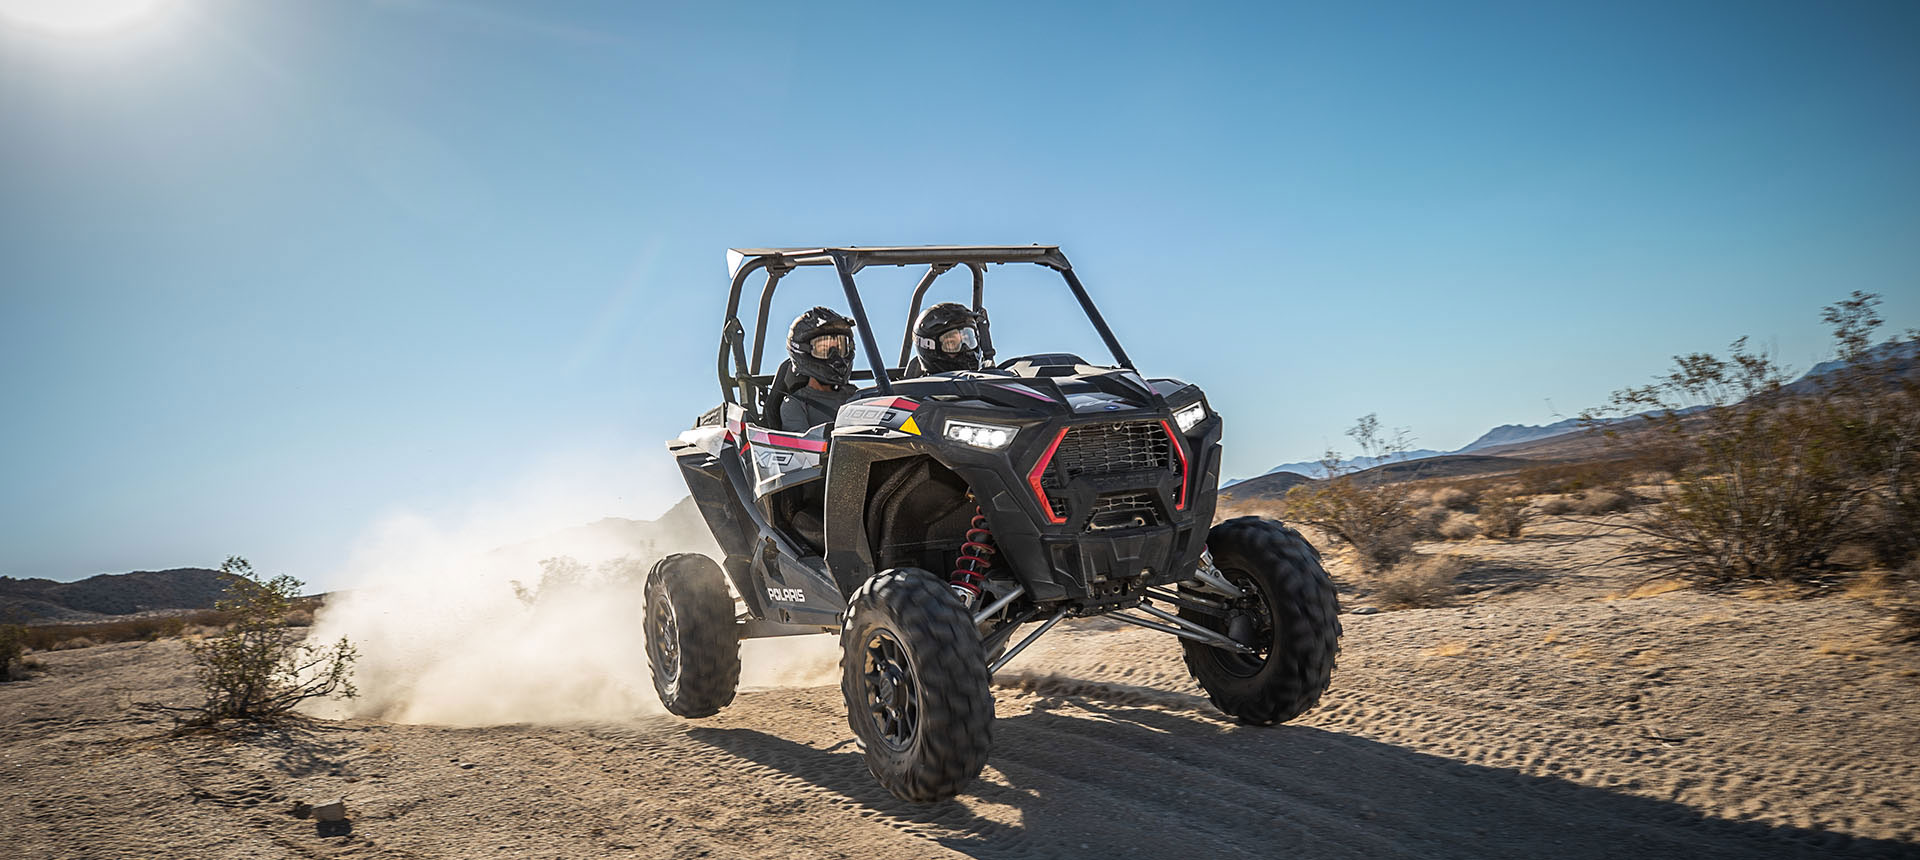 2019 Polaris RZR XP 1000 in Katy, Texas - Photo 8